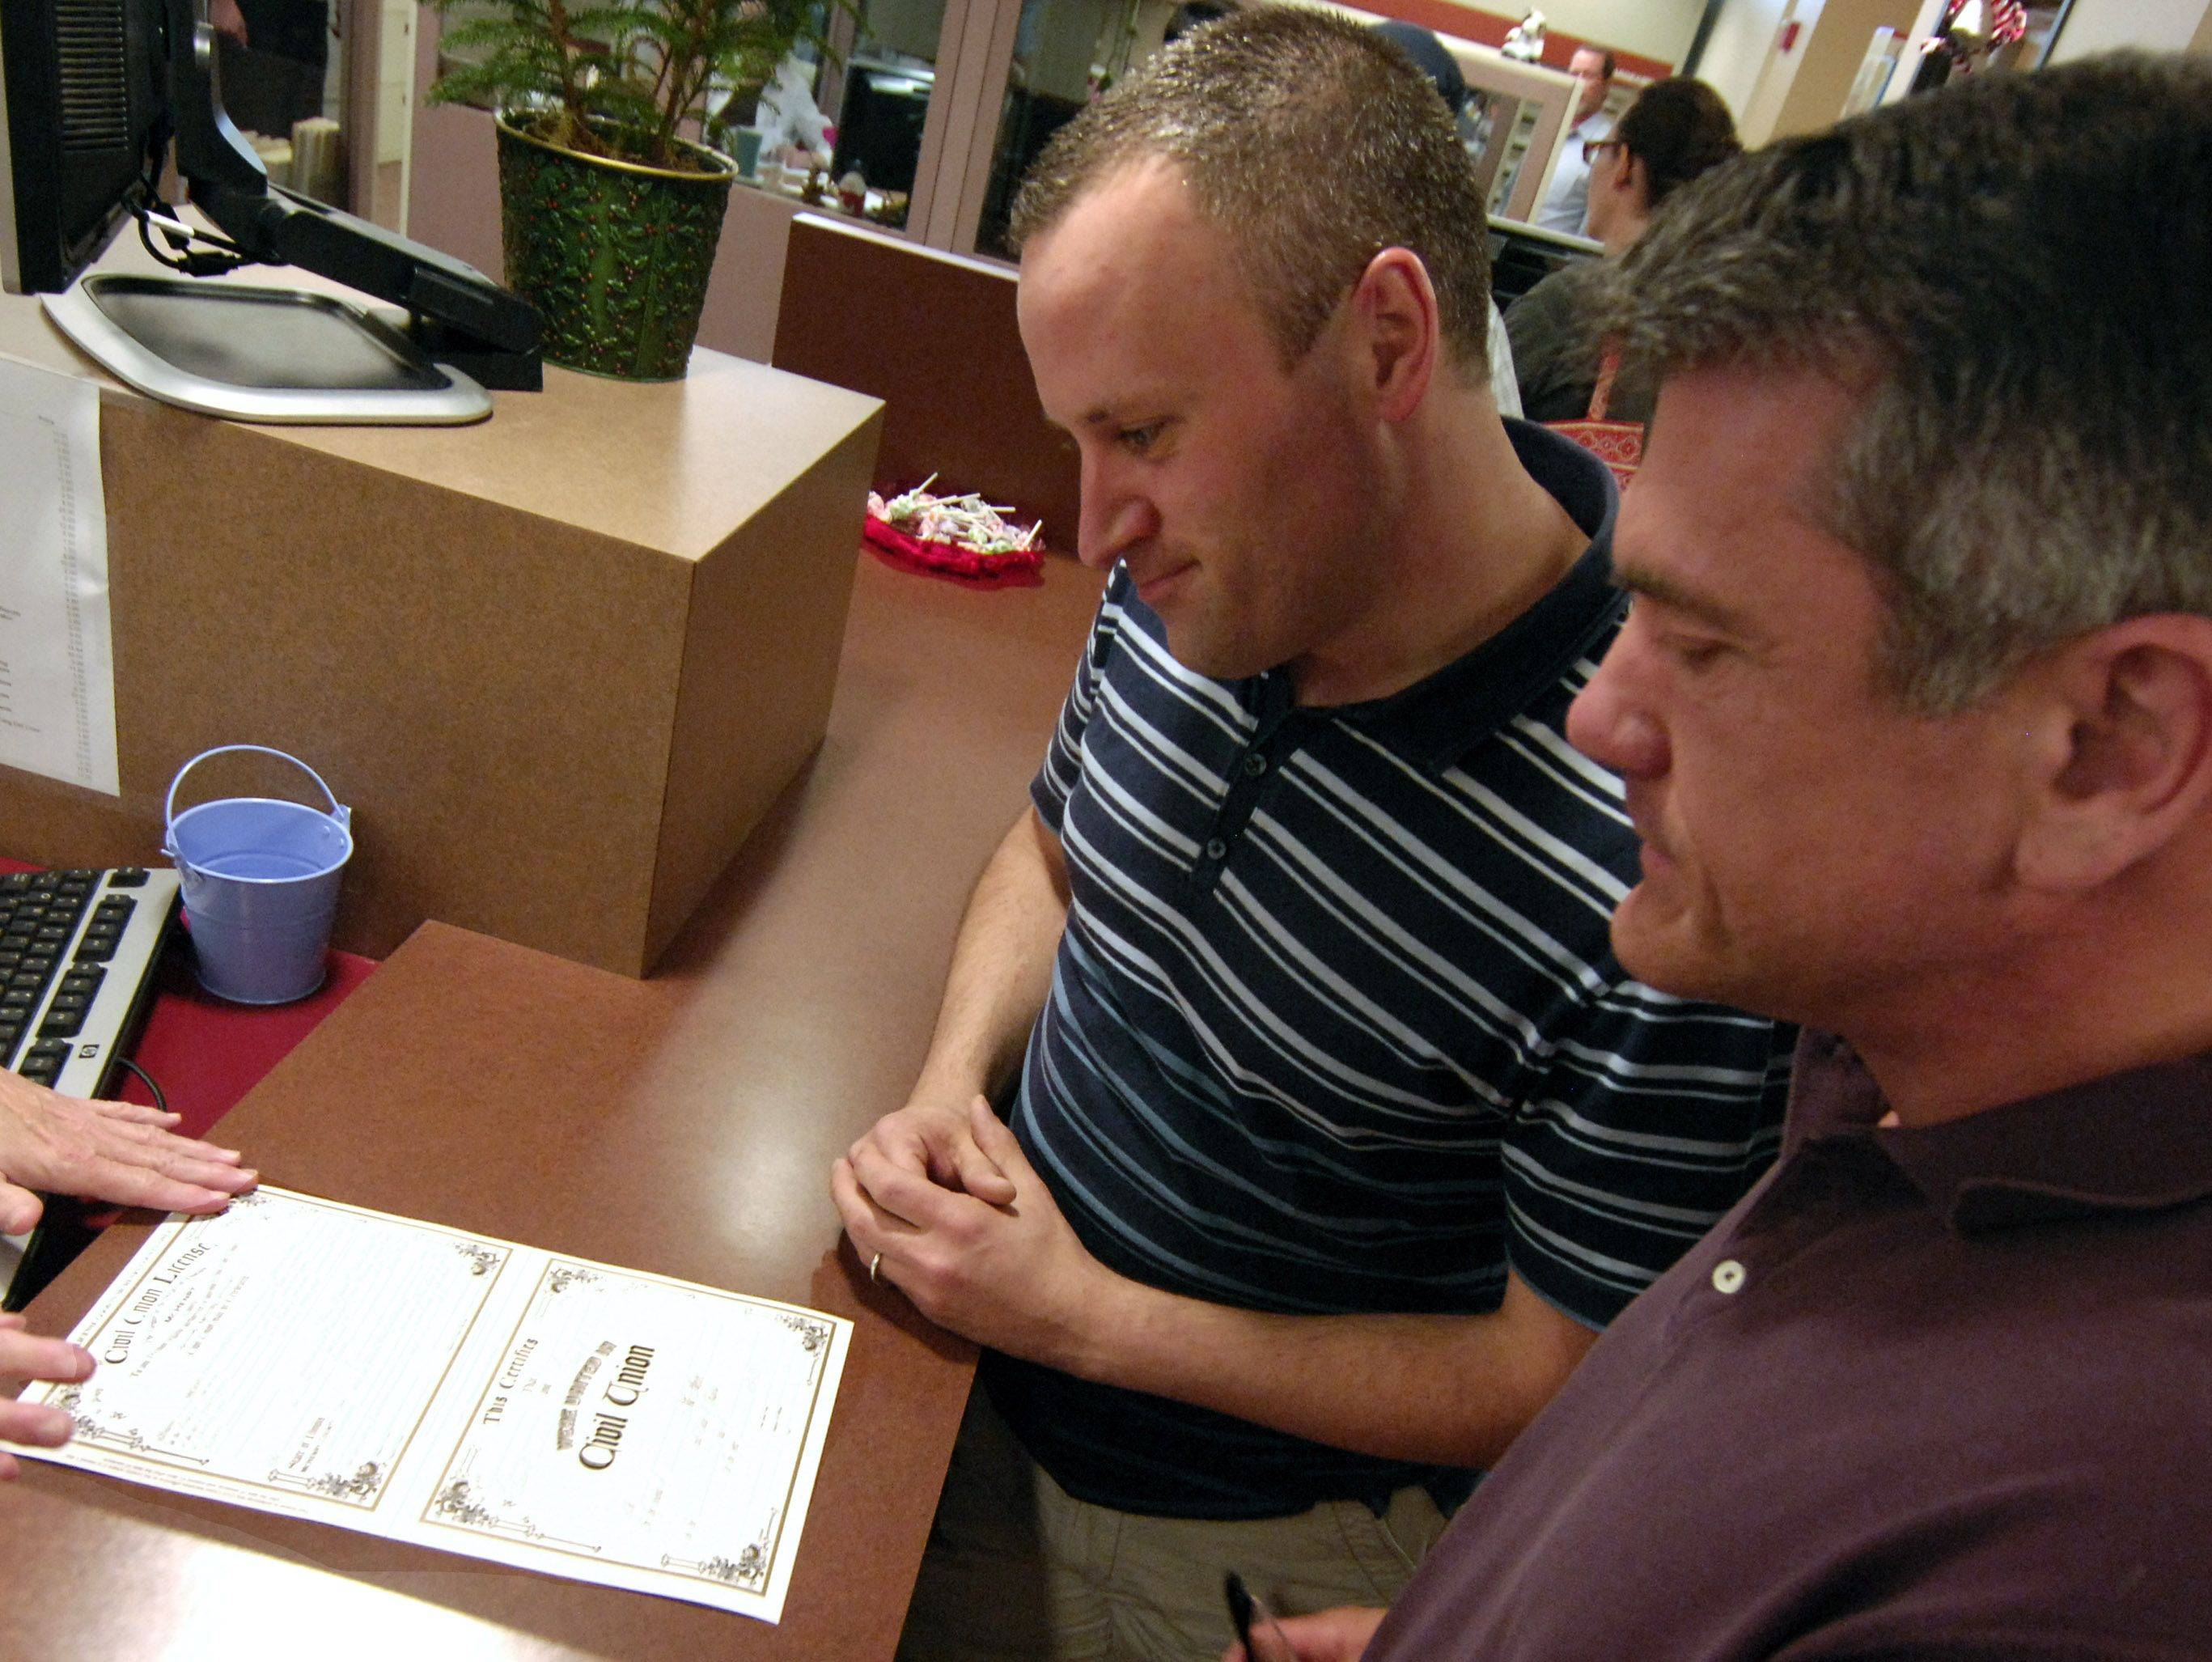 Michael Van Dekreke, left, and Dale Lenig receive their civil union license at the McHenry County clerks office in Woodstock Wednesday.